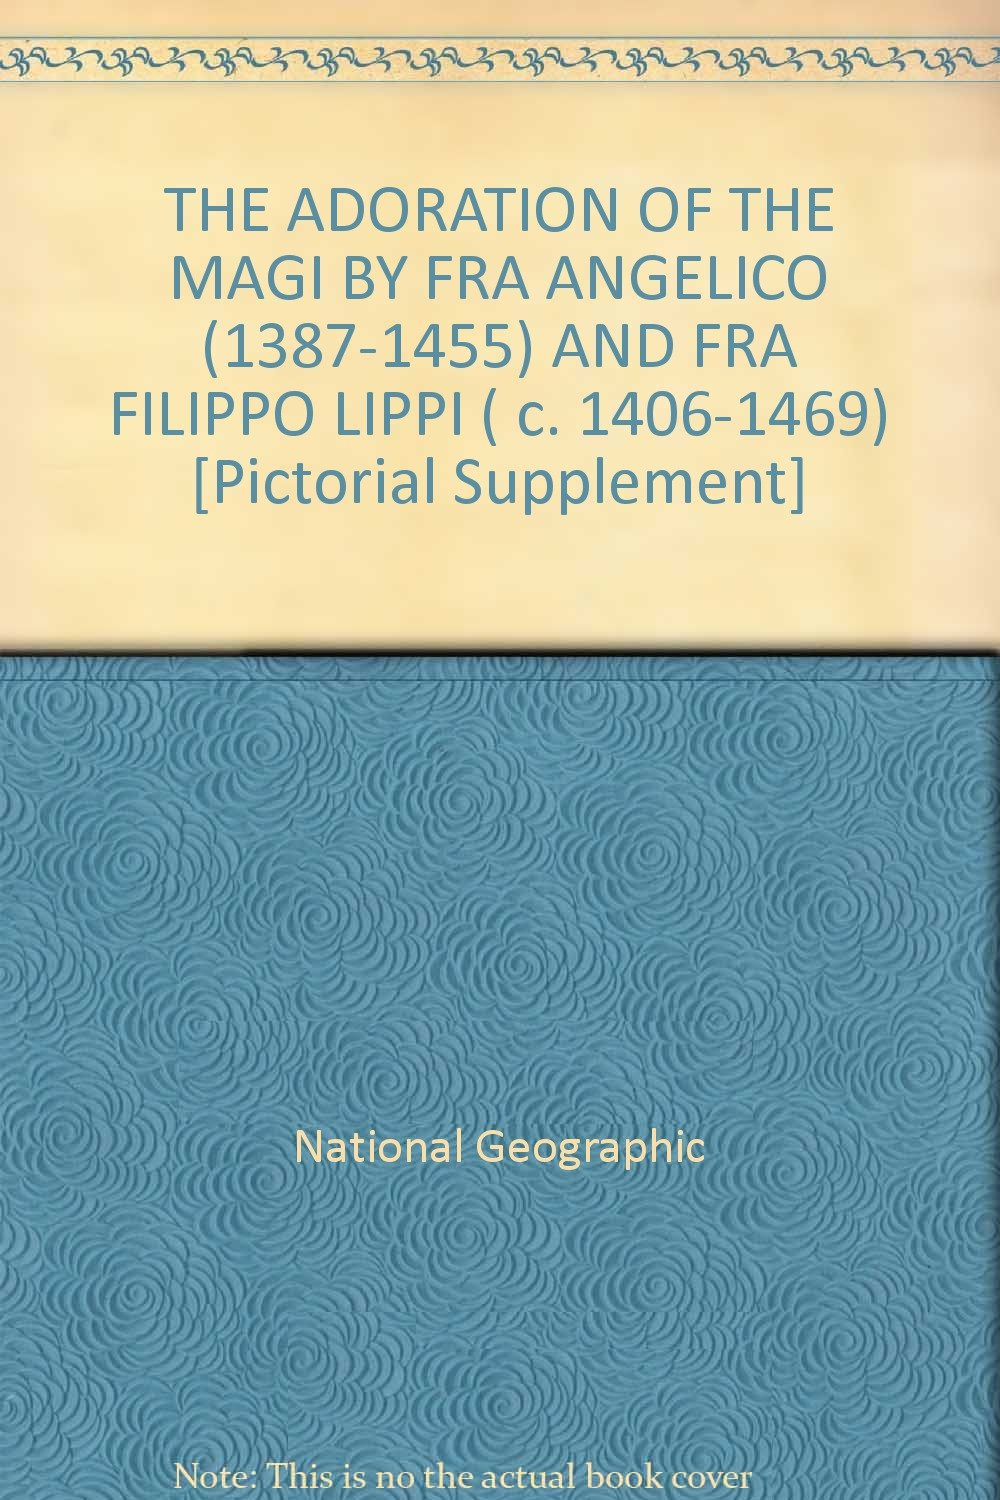 the adoration of the magi by fra angelico 1387 1455 and fra filippo lippi c 1406 1469 pictorial supplement